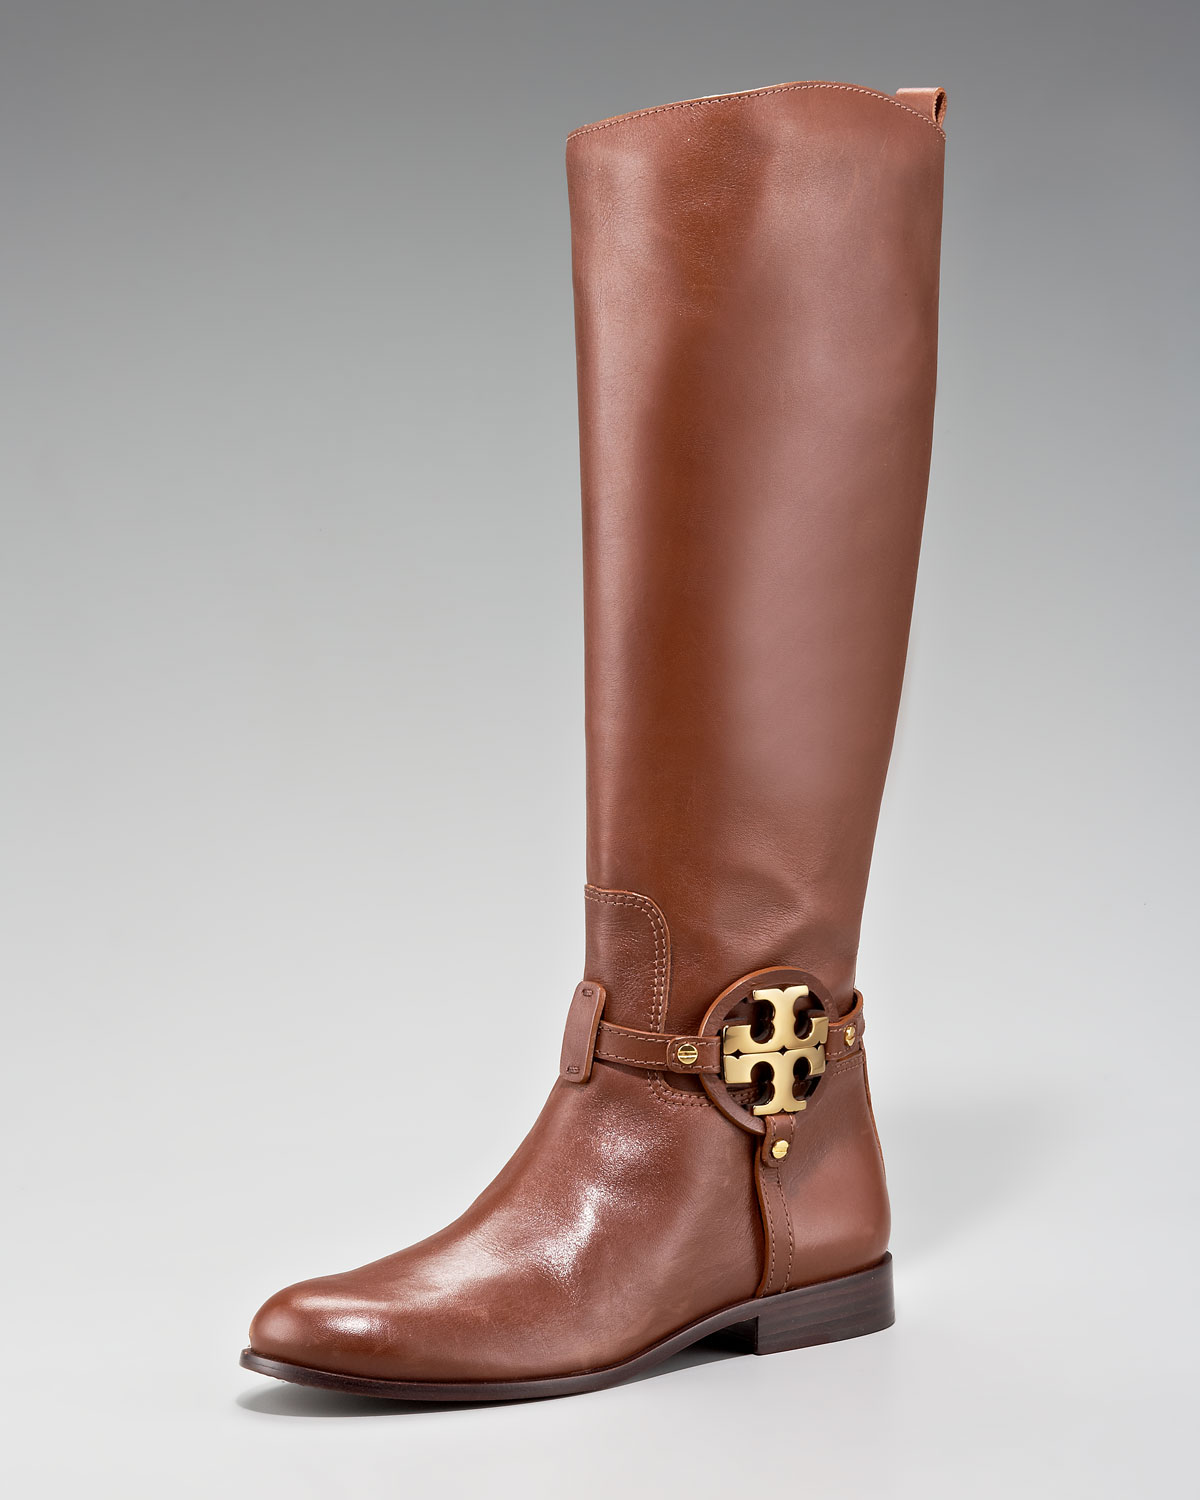 02b65653f39 Lyst - Tory Burch Aaden Riding Boot in Brown